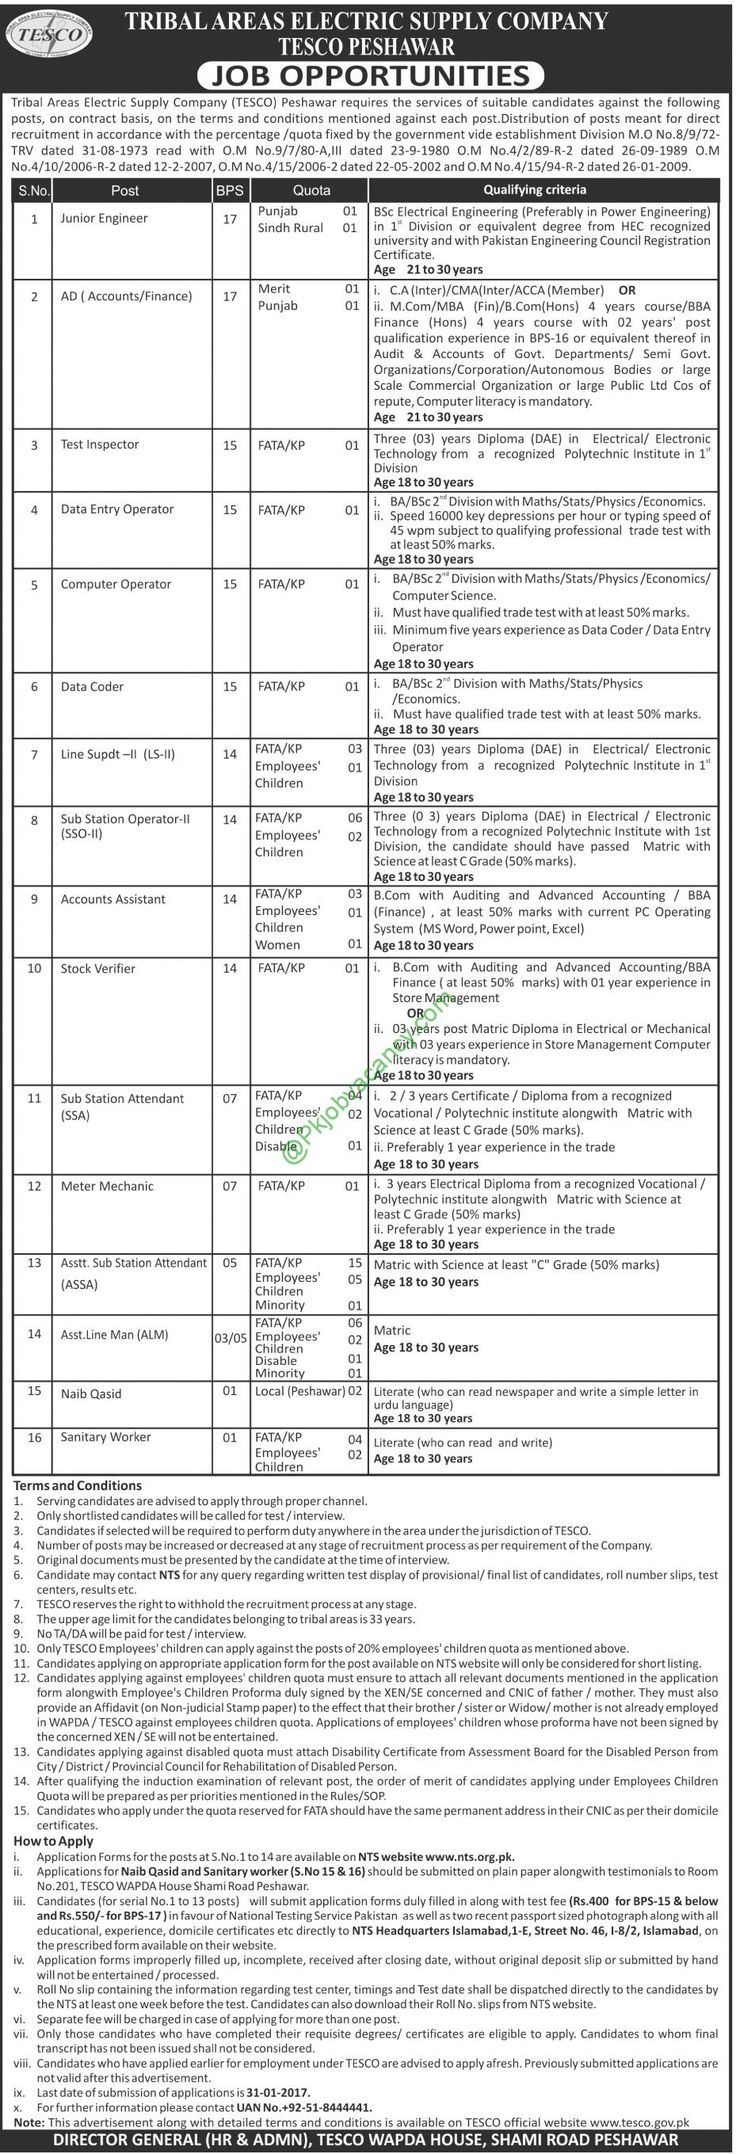 Tribal Areas Electric Supply Company Jobs Application Form Download TESCO Peshawar 2017